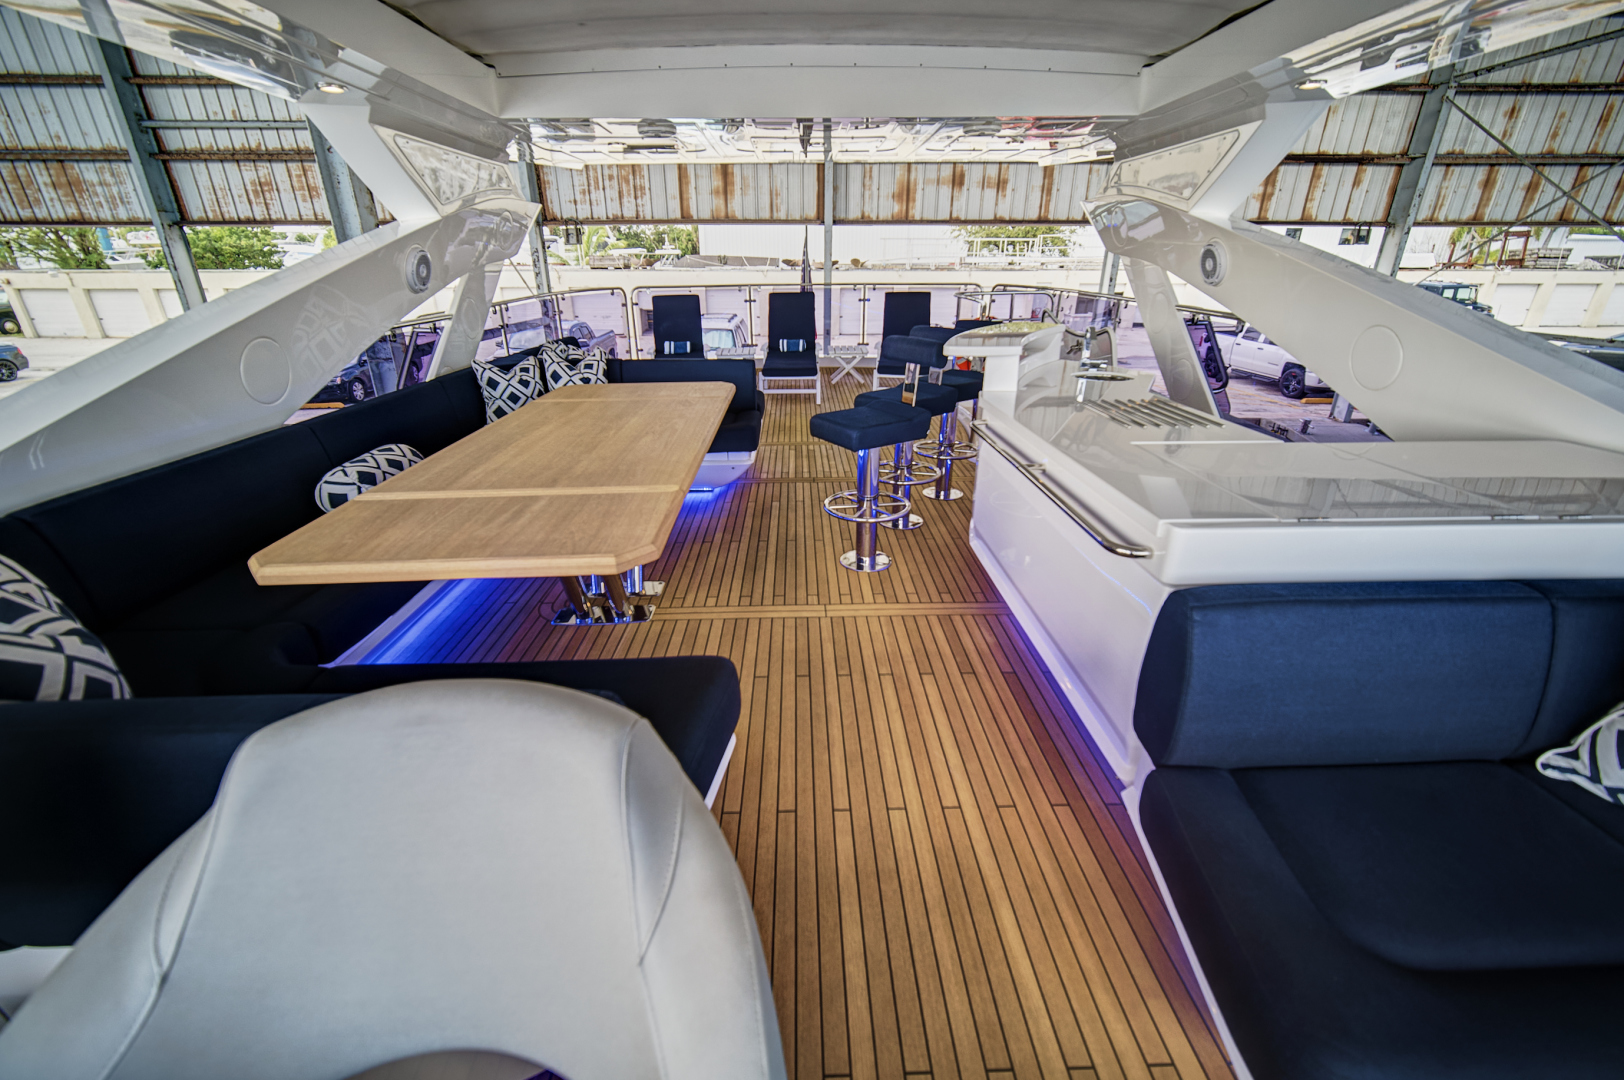 Sunseeker-86 Yacht 2019-Its Noon Somewhere Fort Lauderdale-Florida-United States-1556662 | Thumbnail